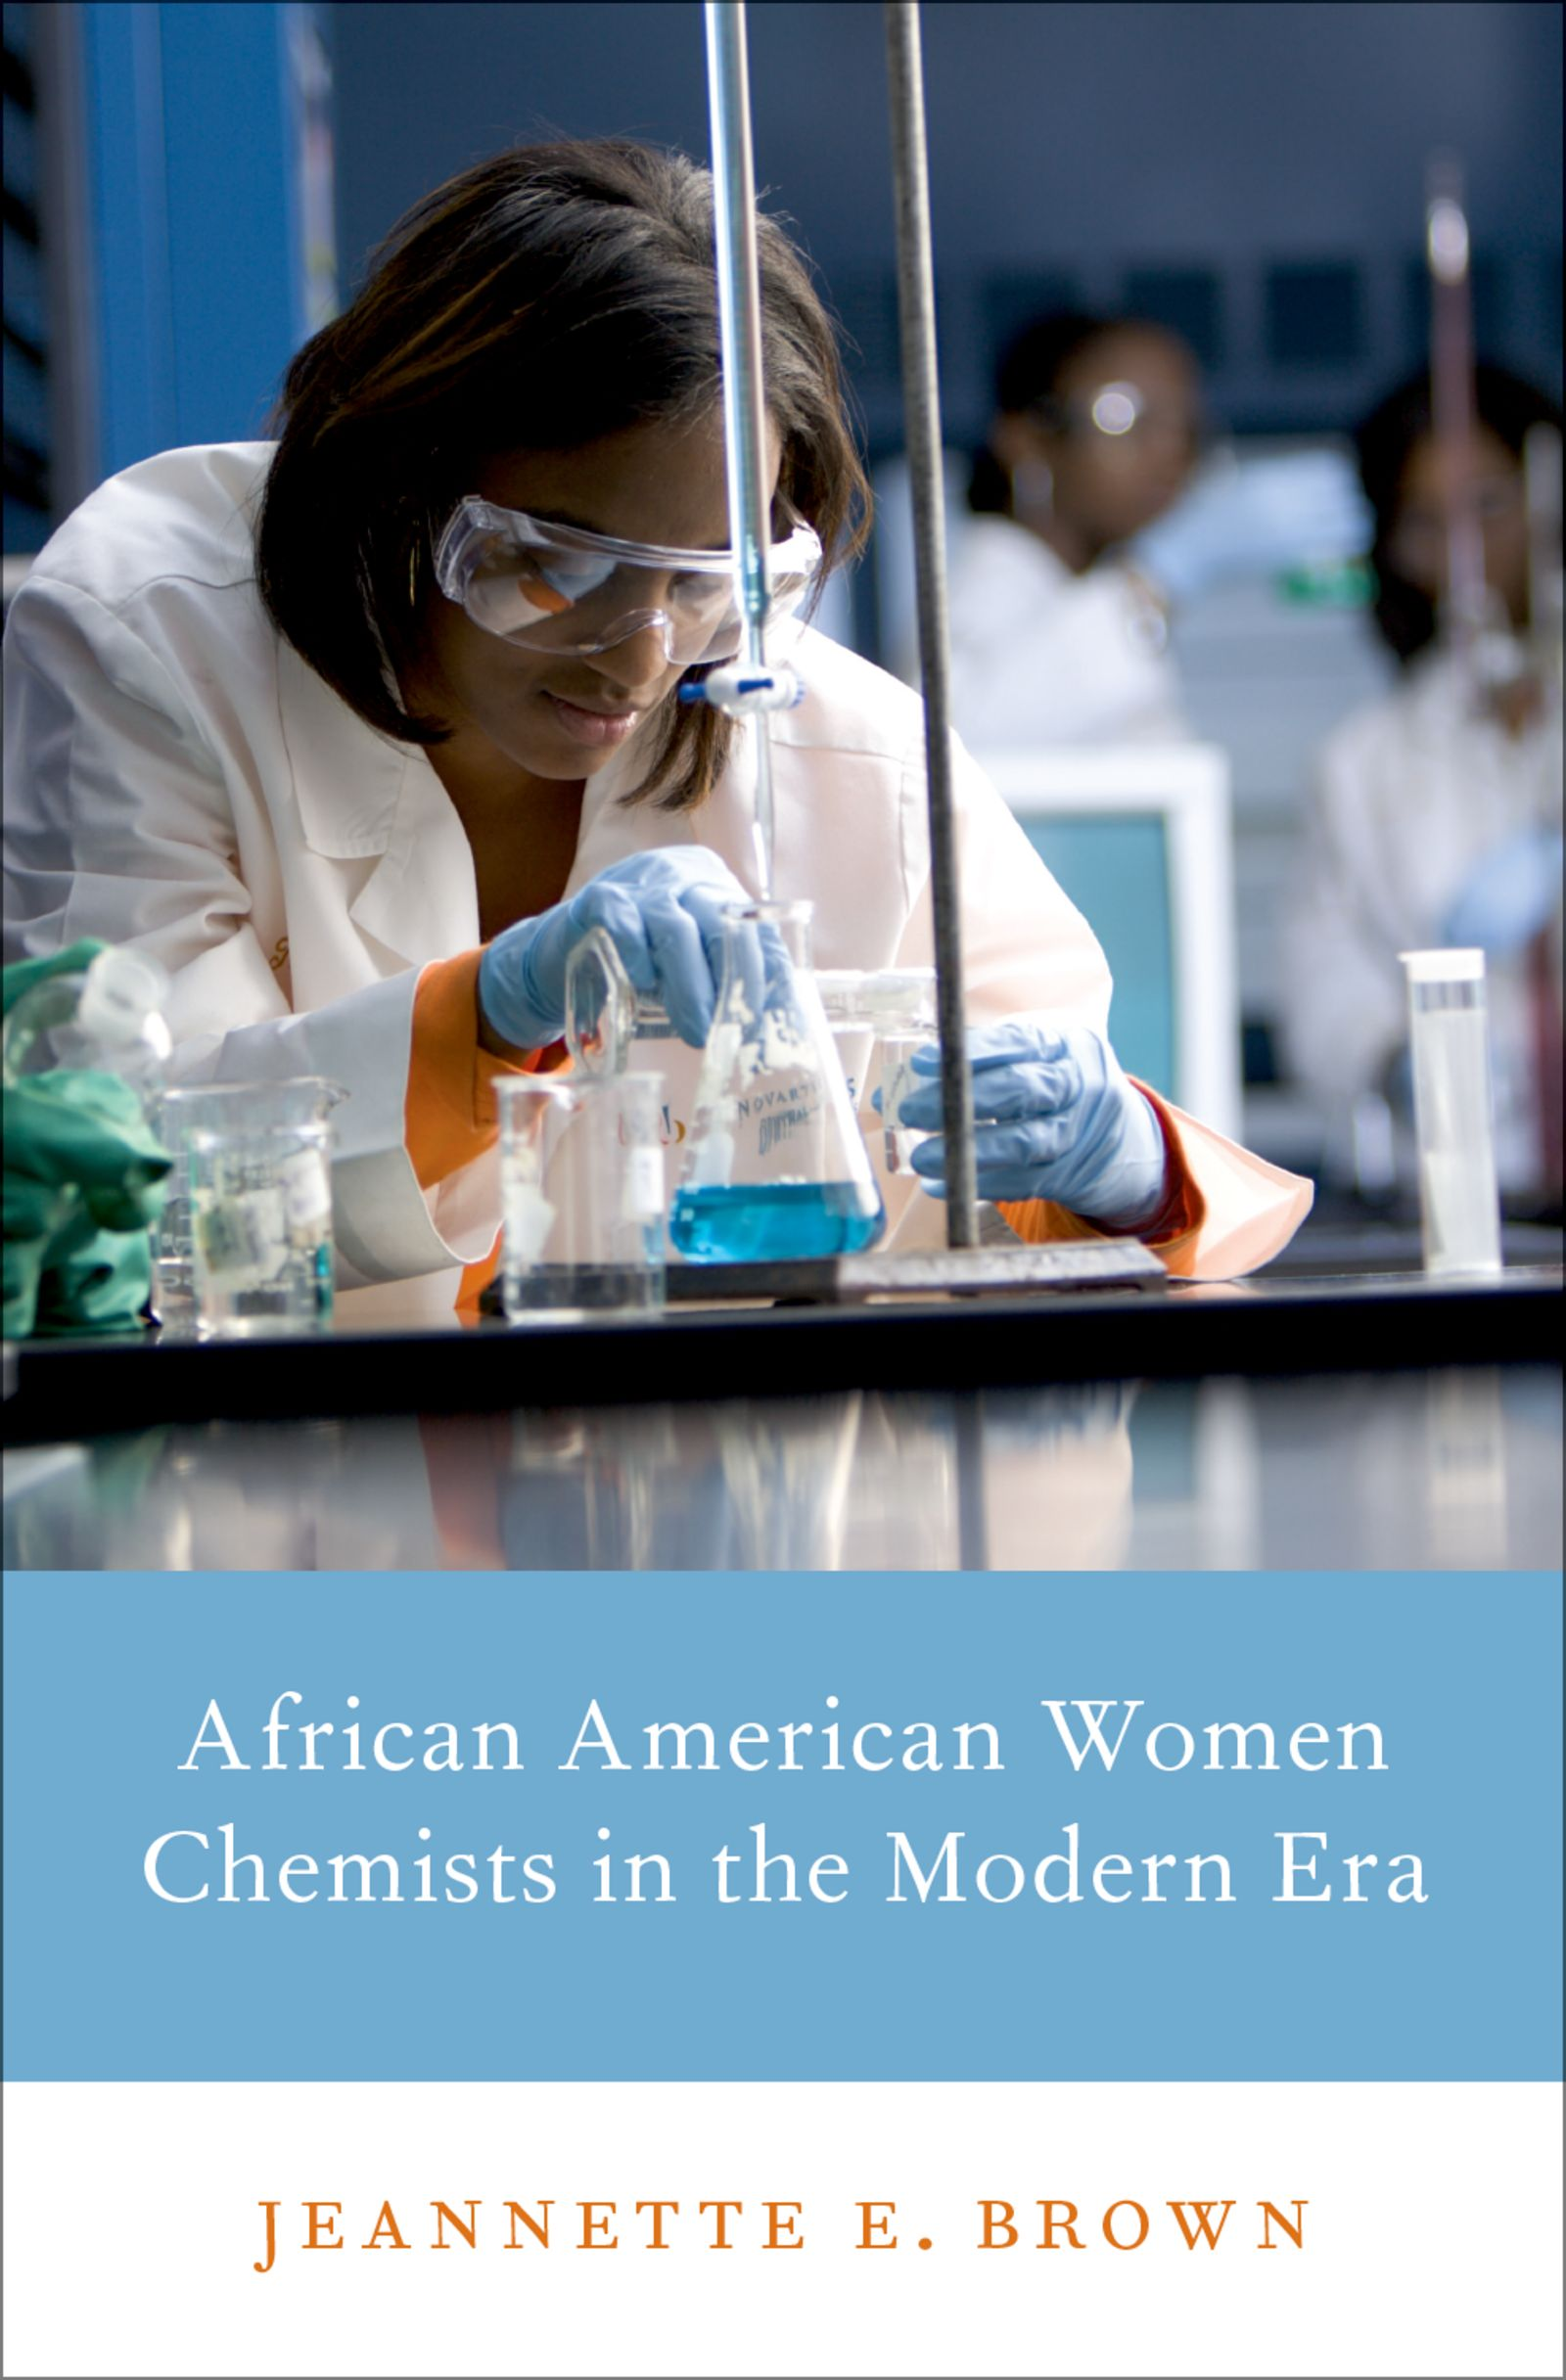 African American Women Chemists in the Modern Era$